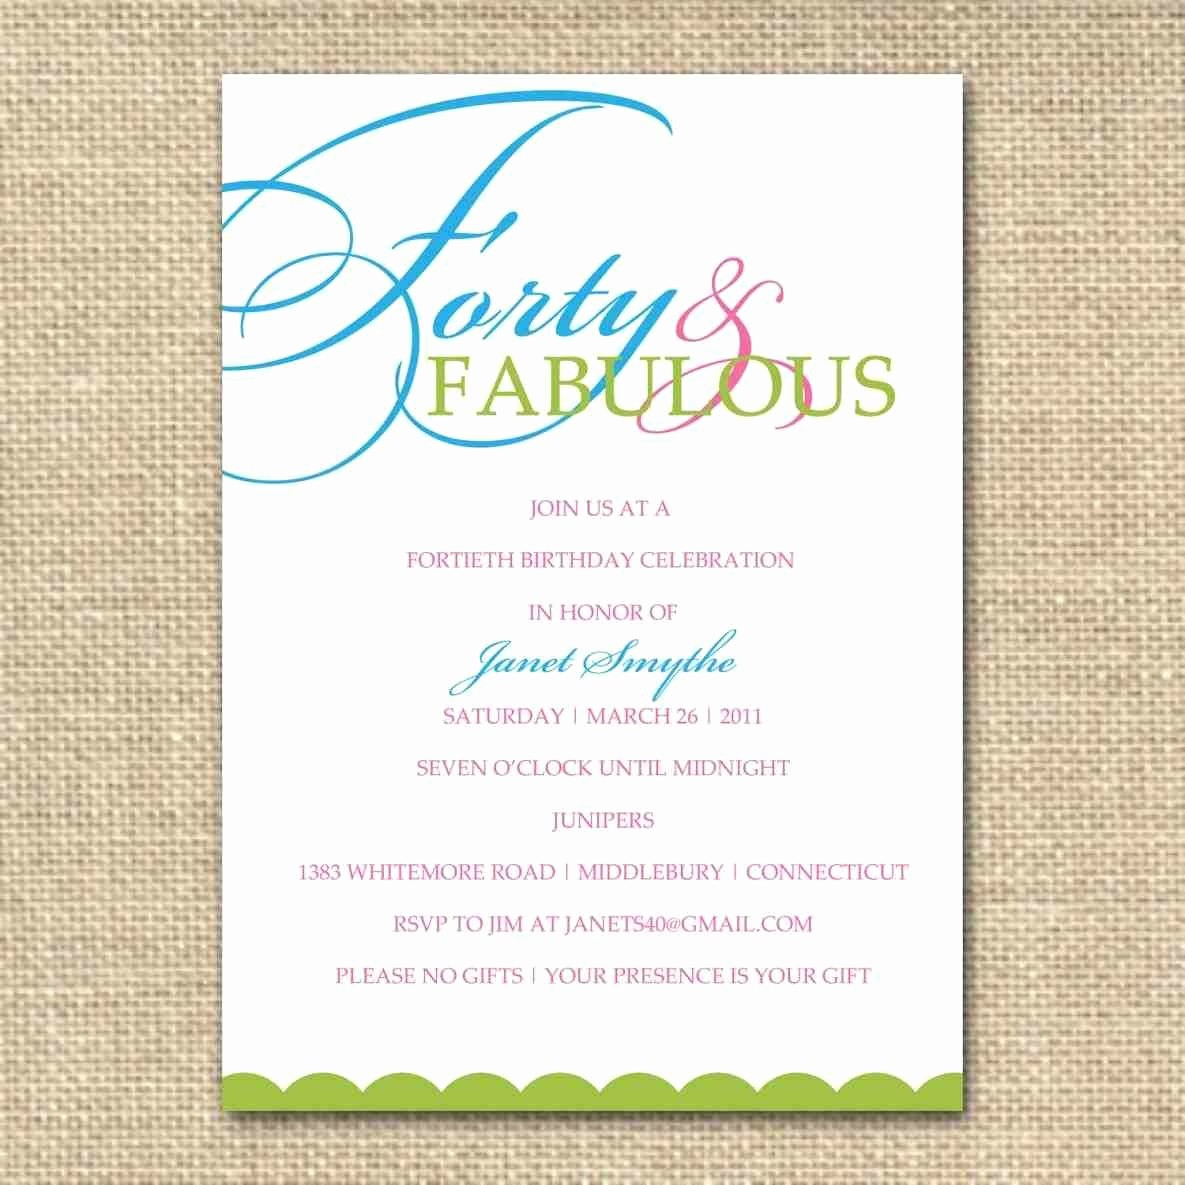 Invitation format for Birthday Party Lovely Birthday Luncheon Invitations Wording Jin's Invitations